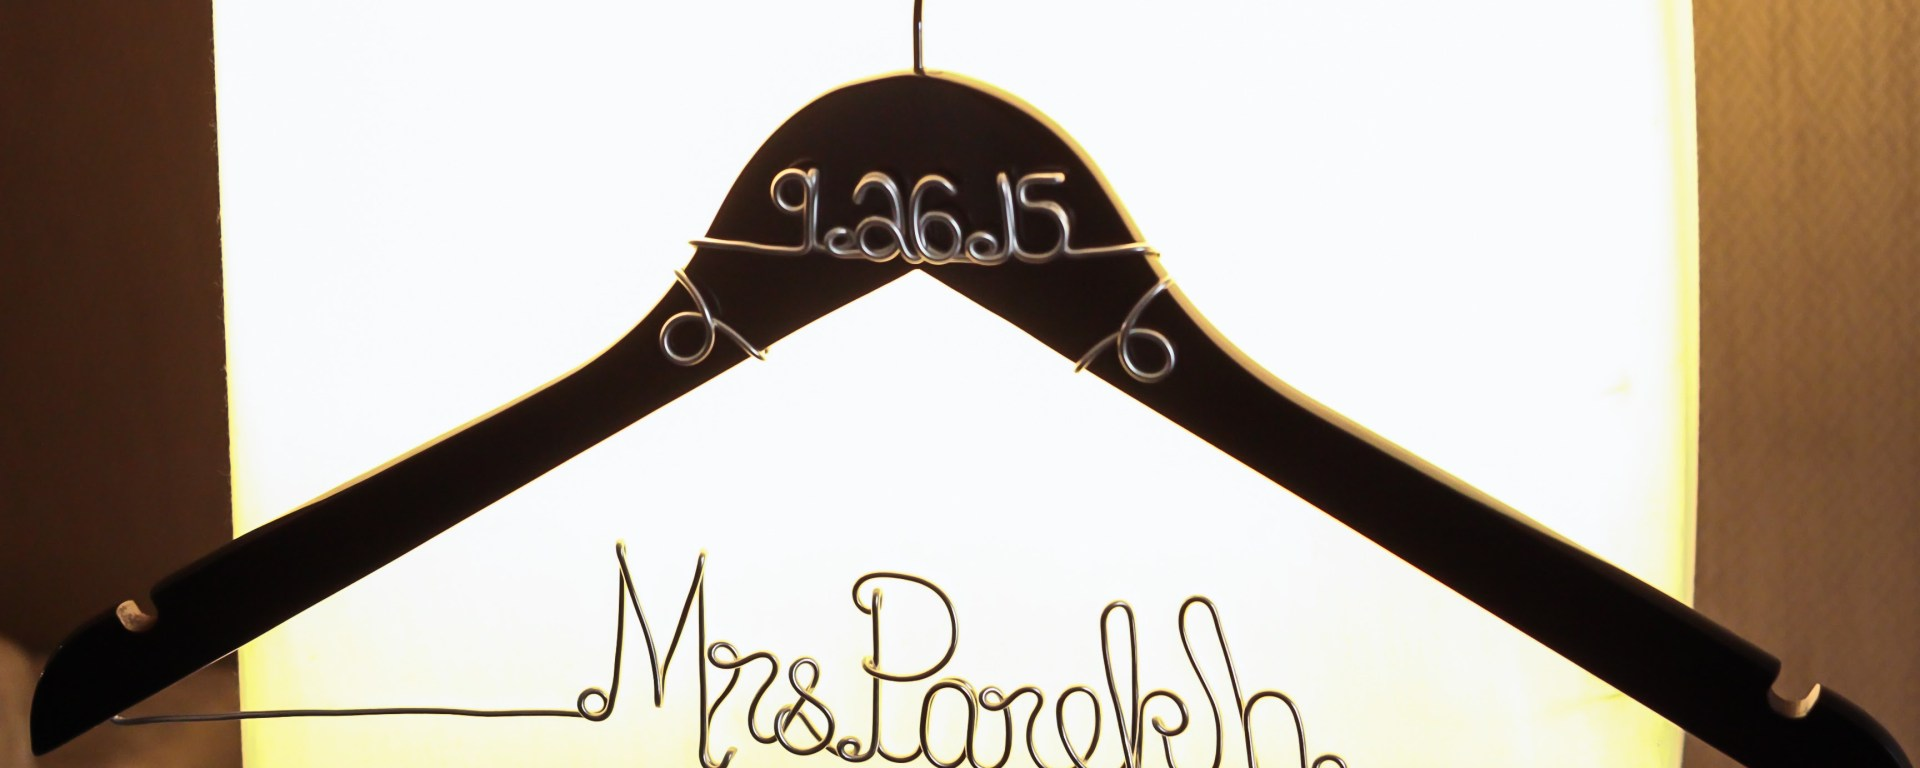 Custom made wire hanger with the bride's new last name ion it.